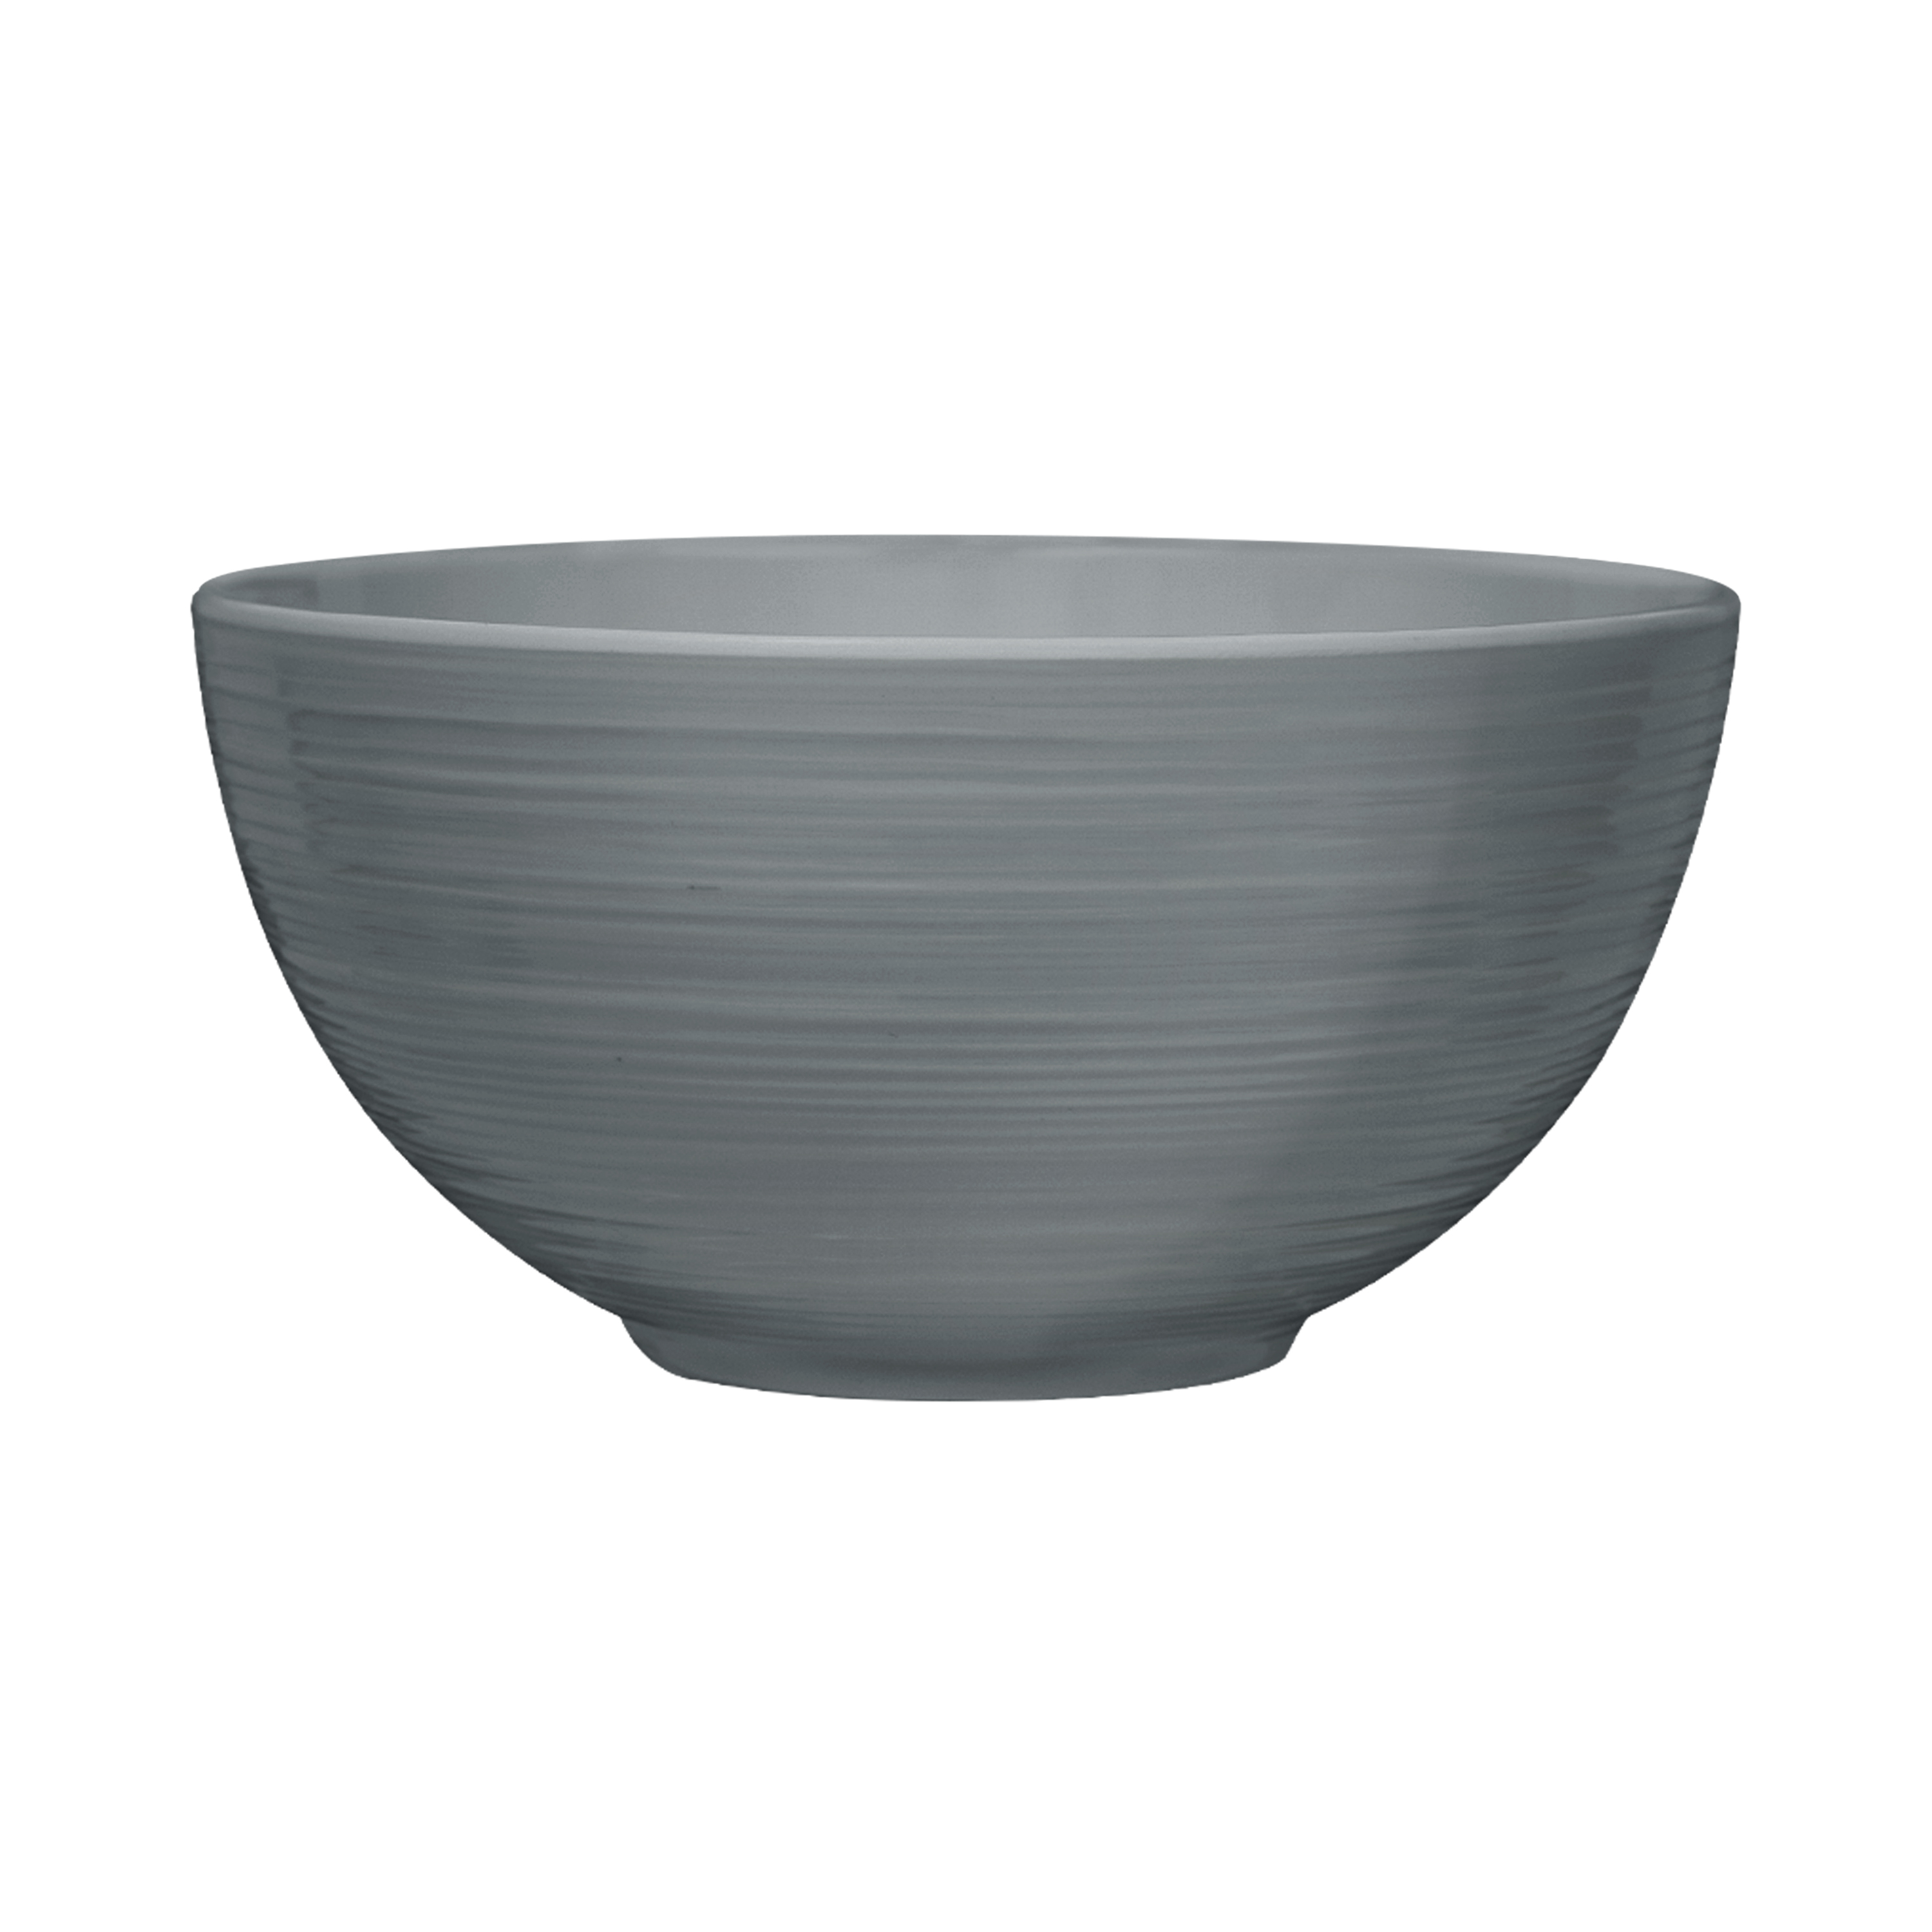 American Conventional Plate & Bowl Sets, Charcoal, 12-piece set slideshow image 3